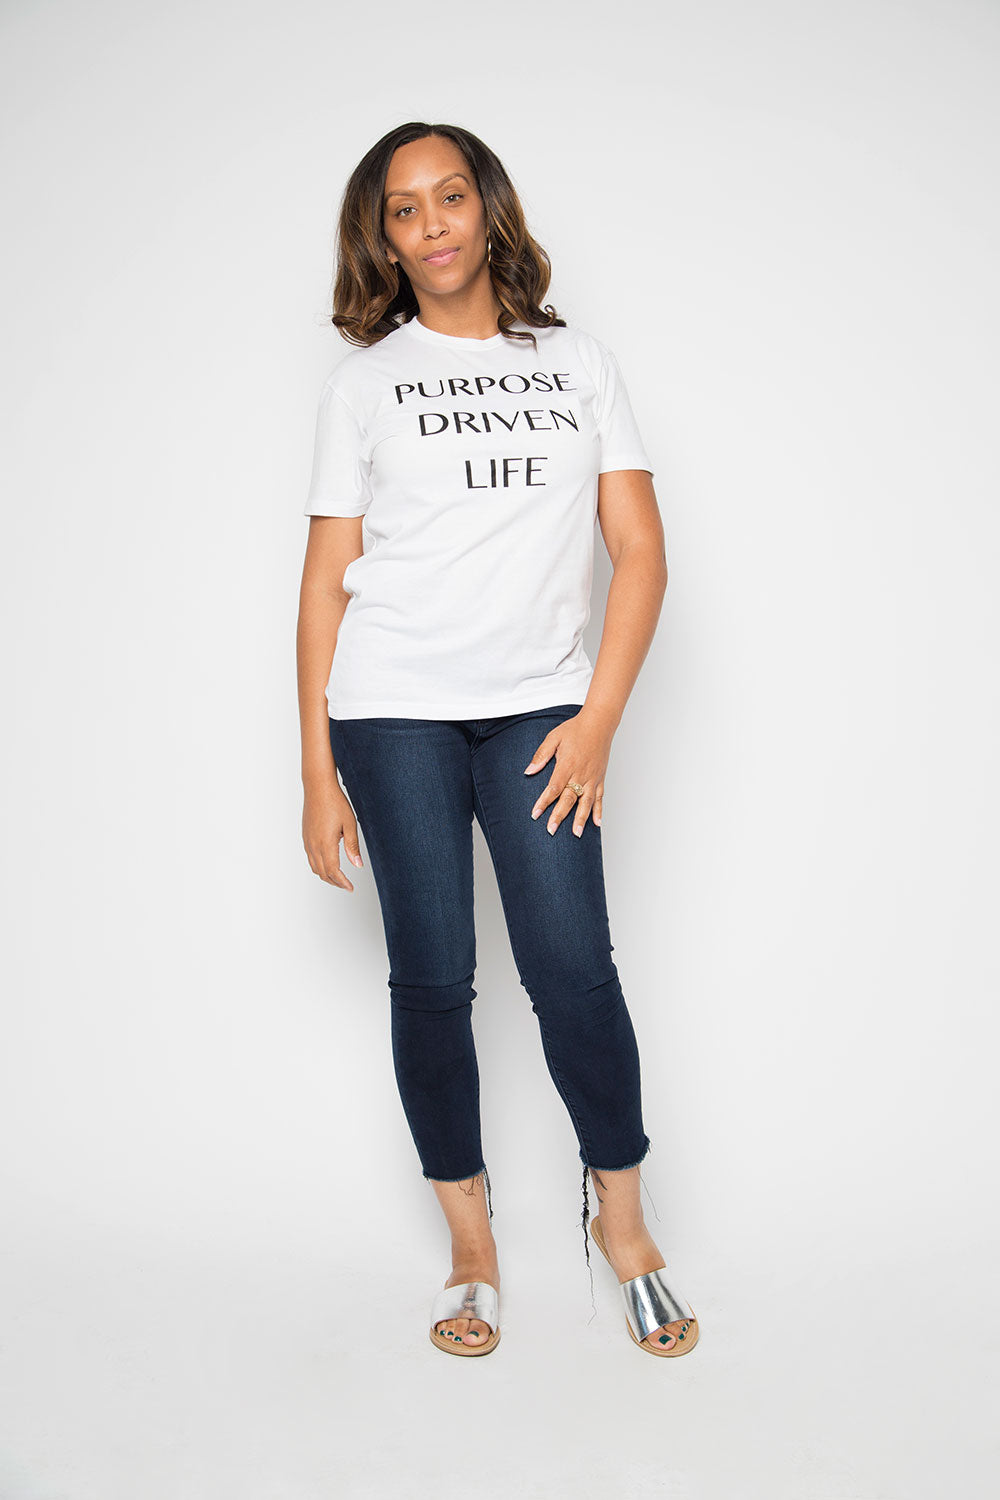 Purpose Driven Life Shirt in White - Trunk Series, LLC